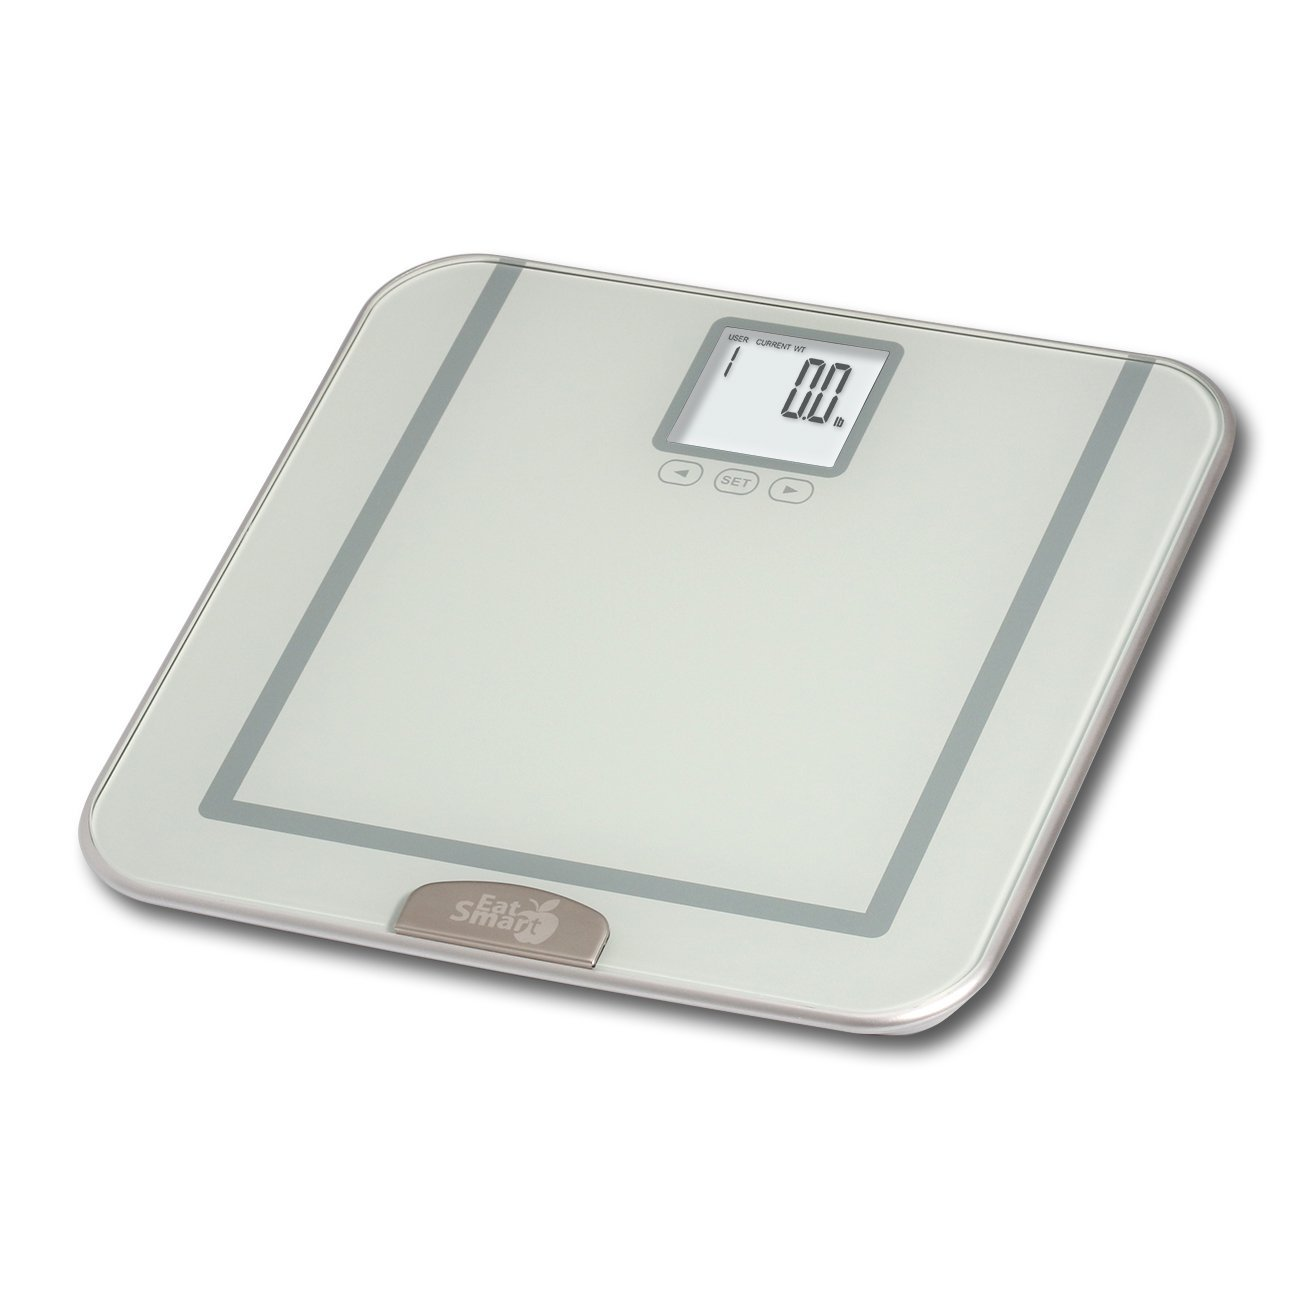 Bed bath and beyond bathroom scales - Scales At Bed Bath And Beyond Smart Body Scale Eatsmart Precision Digital Bathroom Scale